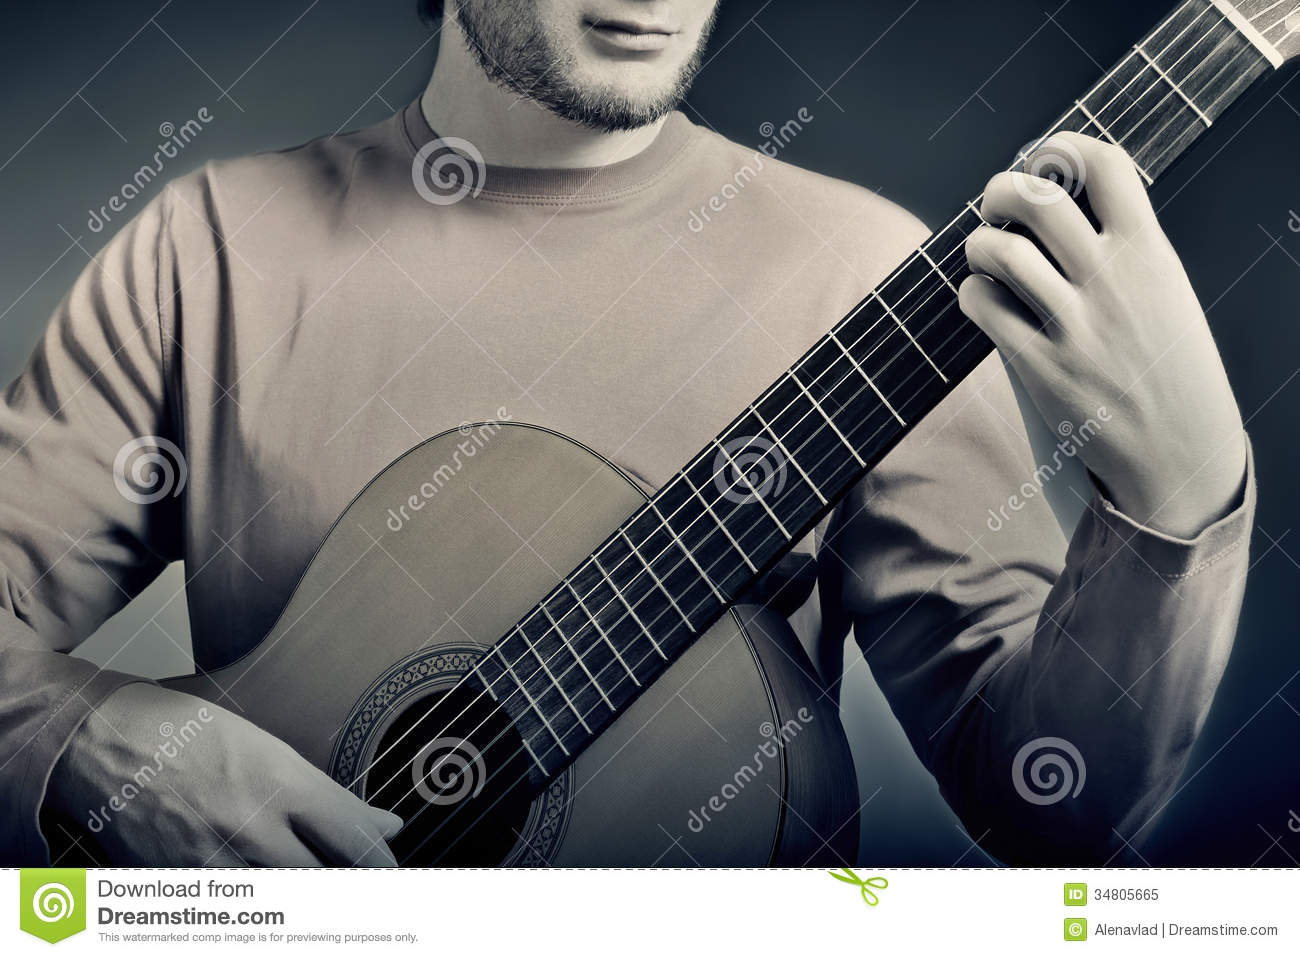 classical guitar player details royalty free stock photo image 34805665. Black Bedroom Furniture Sets. Home Design Ideas